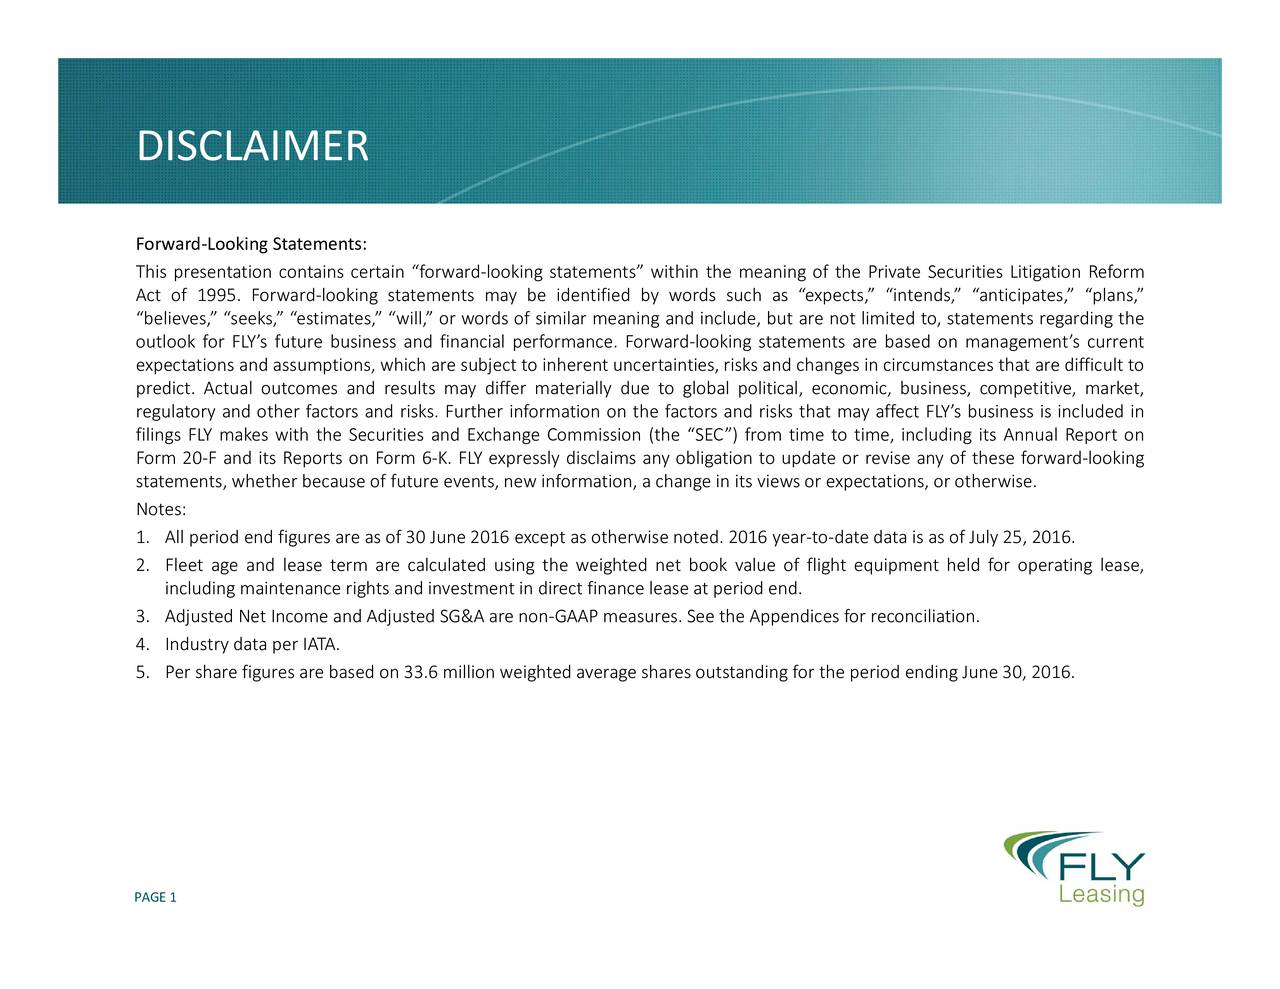 of fligendices for reconciliation.ting lease, olitifrom time to time, including its Annual Report on5, 2016. on n its views or expectations, or otherwise.iod ending June 30, 2016. oking statements are based on managements current is included in n the d include, but are not limited to, statements regarding thecult to including maintenance rights and investment in direct finance lease at pe DISCL ForThIsdrbelntgtikcrotw.ataroslNatcemA.ssaetlraSea5ngadlreriae.fmhae.pa.iewlsaPAGE1pbatspliCigesihnedta.2ro